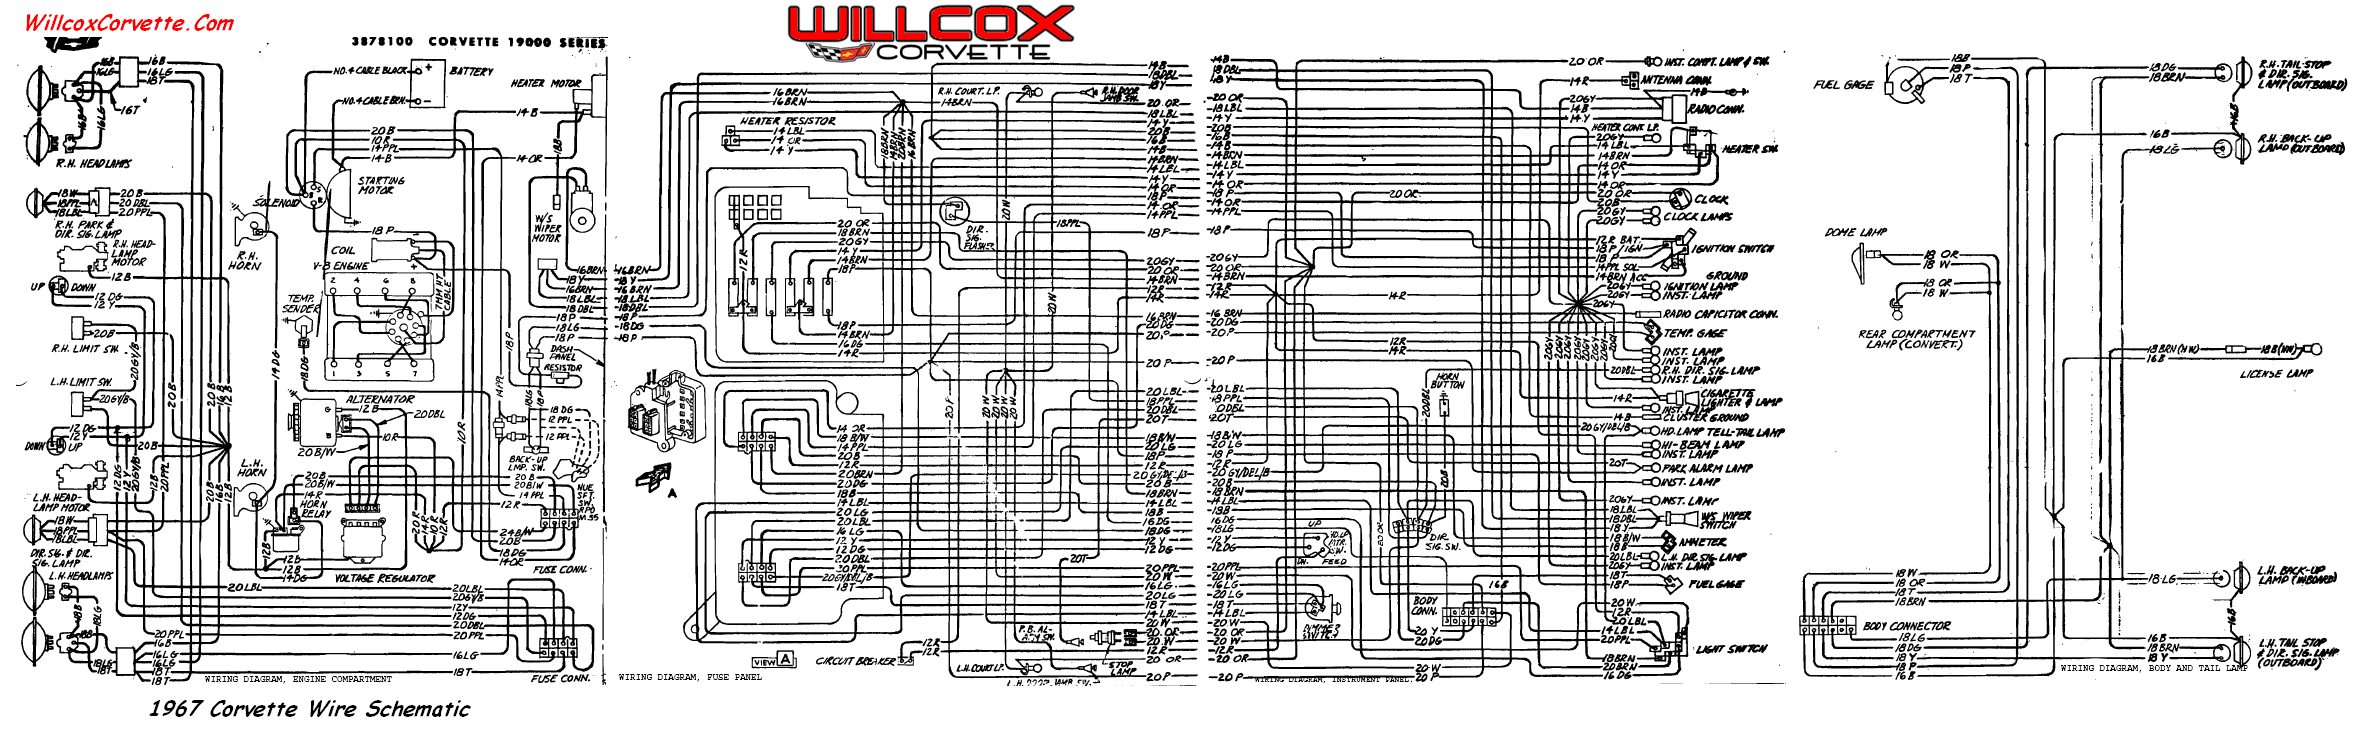 67 wire schematic for tracing wires 1967 corvette wiring diagram (tracer schematic) willcox corvette 1971 corvette wiring diagram pdf at mifinder.co